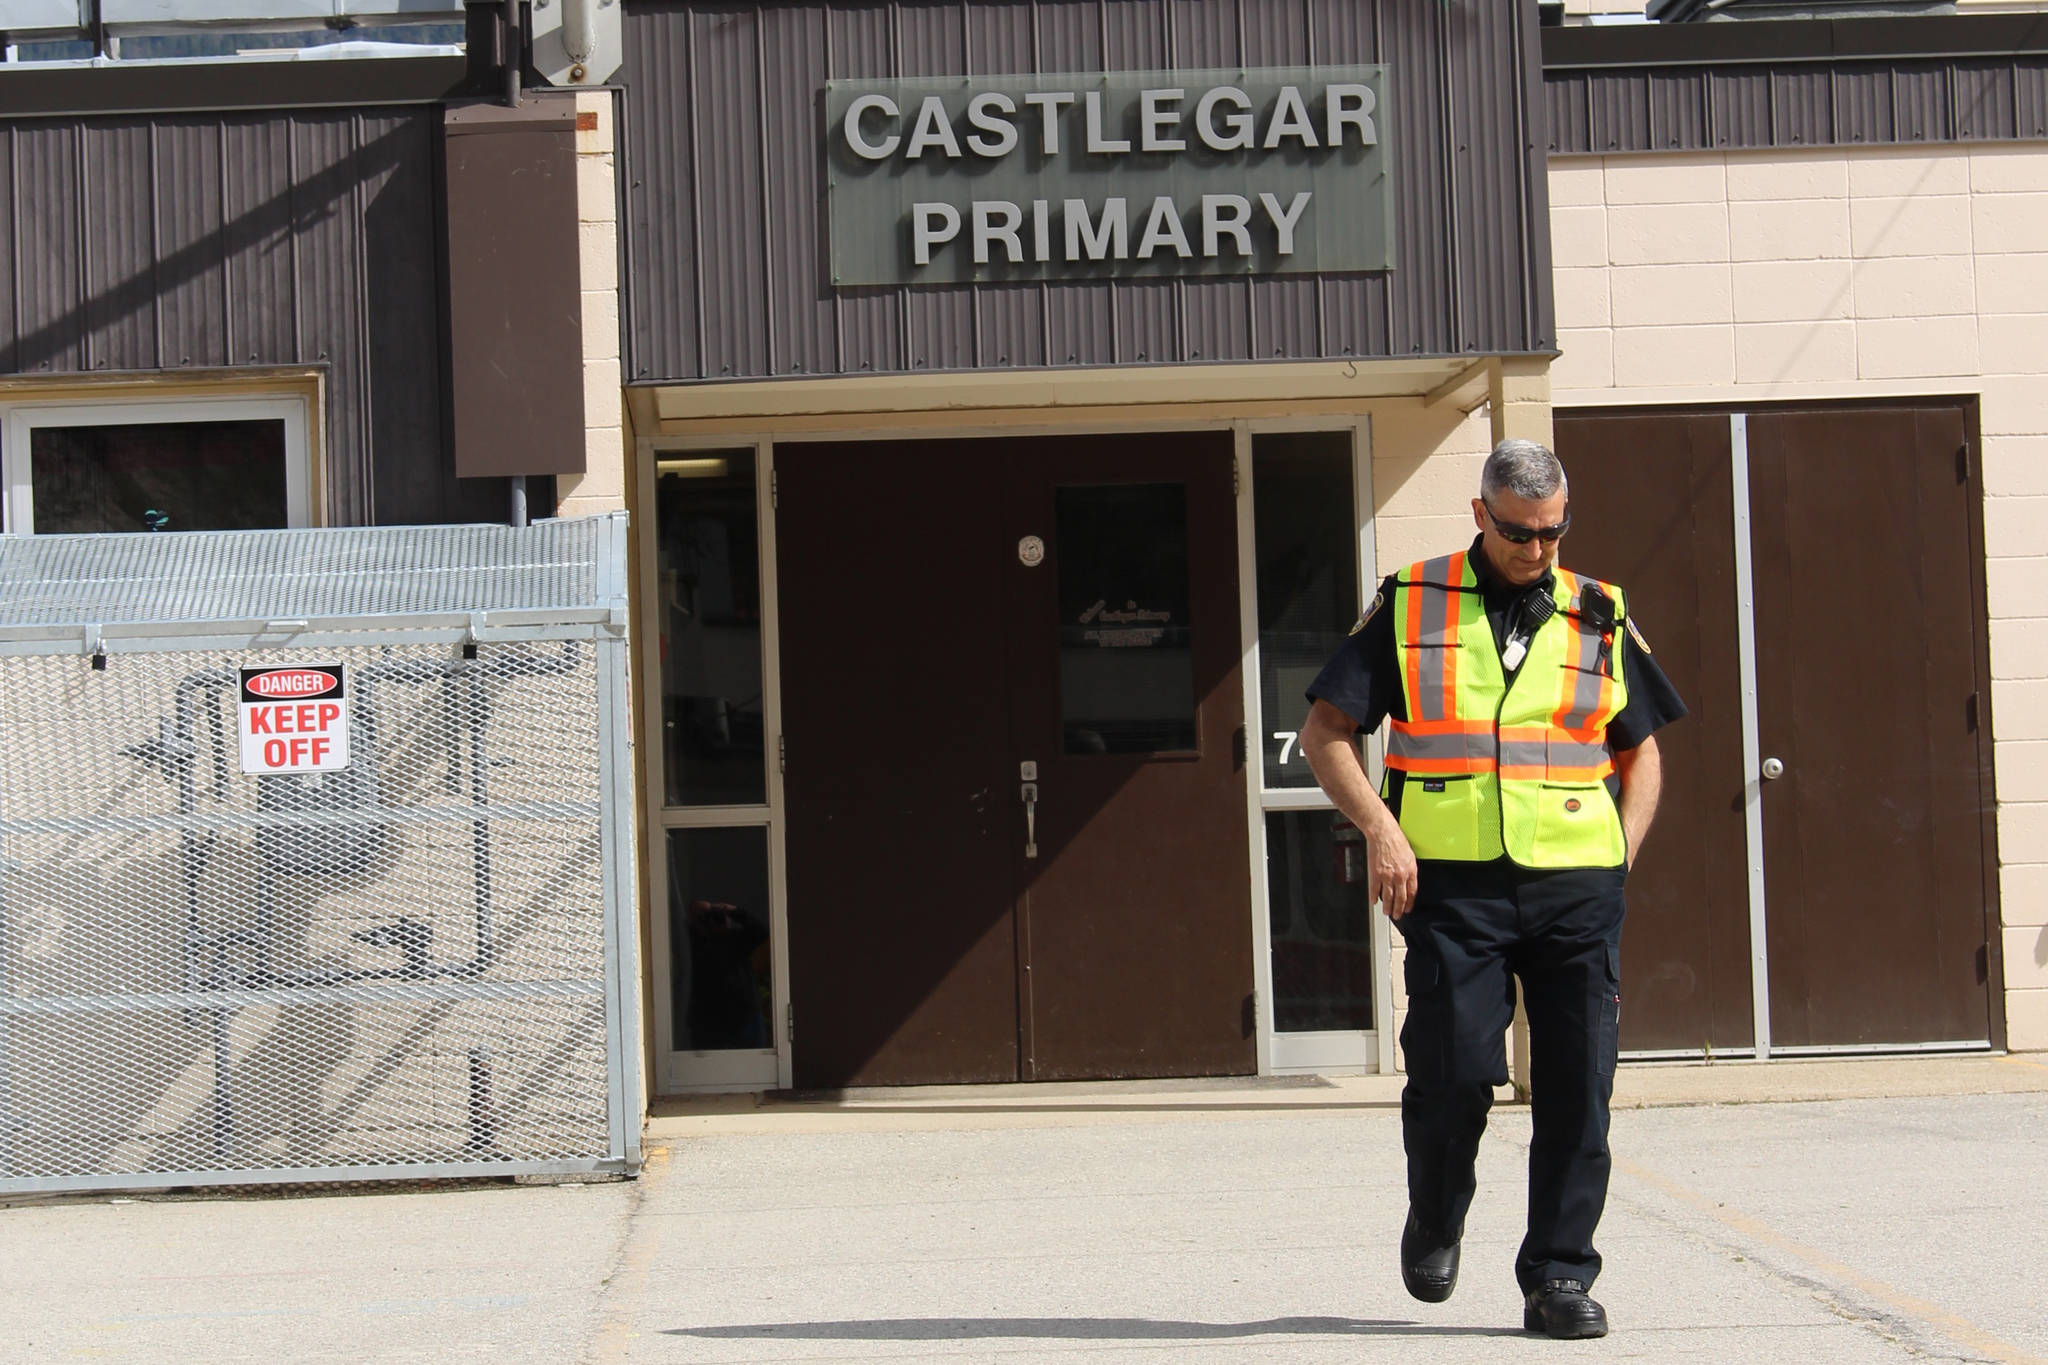 Castlegar fire chief Sam Lattanzio was called to a suspected gas leak at Castlegar Primary School April 15. Photo: John Boivin